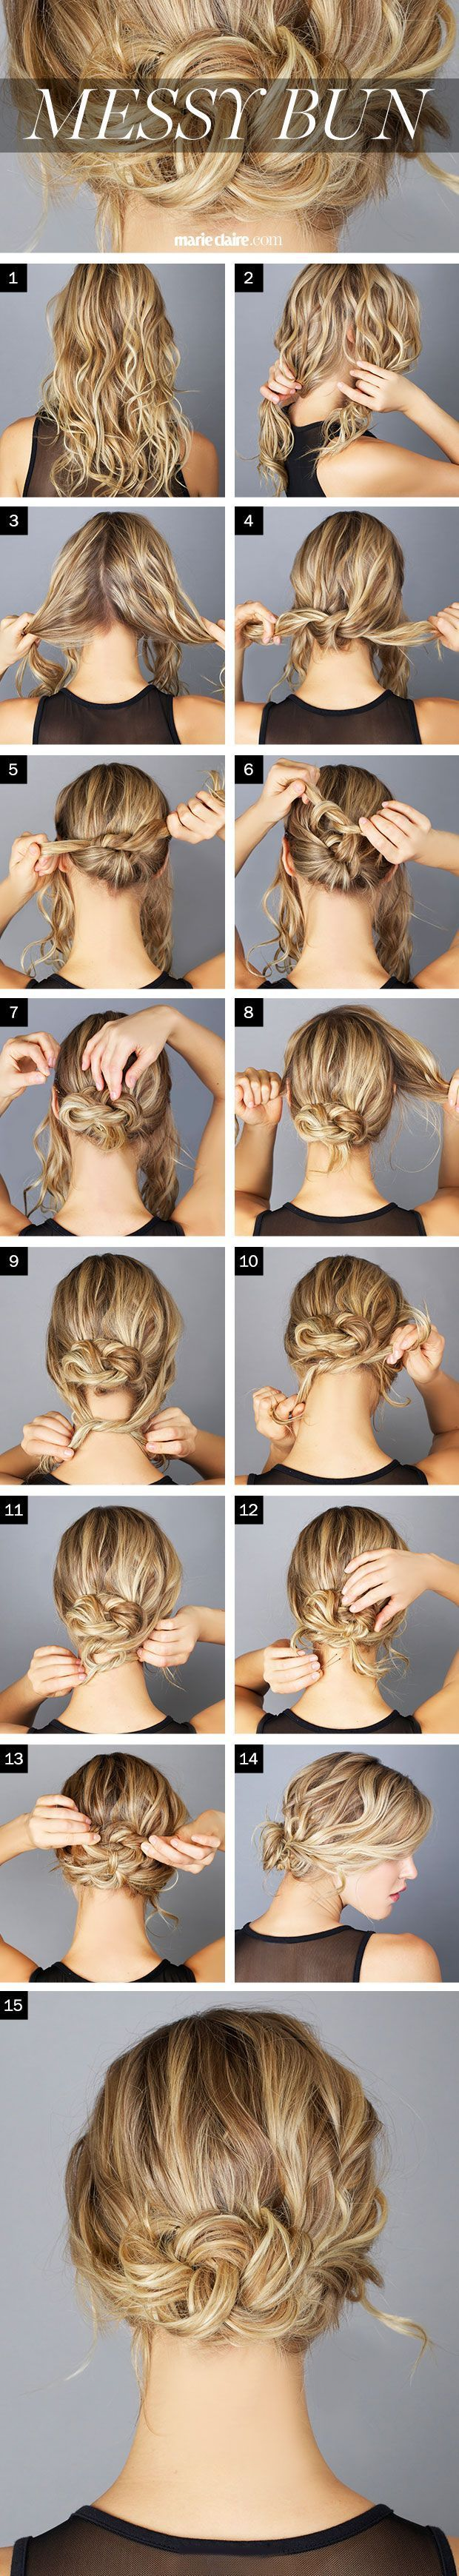 Hair How-To: The Messy Knot Bun (click for step by step instructions) --- if you... - http://1pic4u.com/2015/09/02/hair-how-to-the-messy-knot-bun-click-for-step-by-step-instructions-if-you/